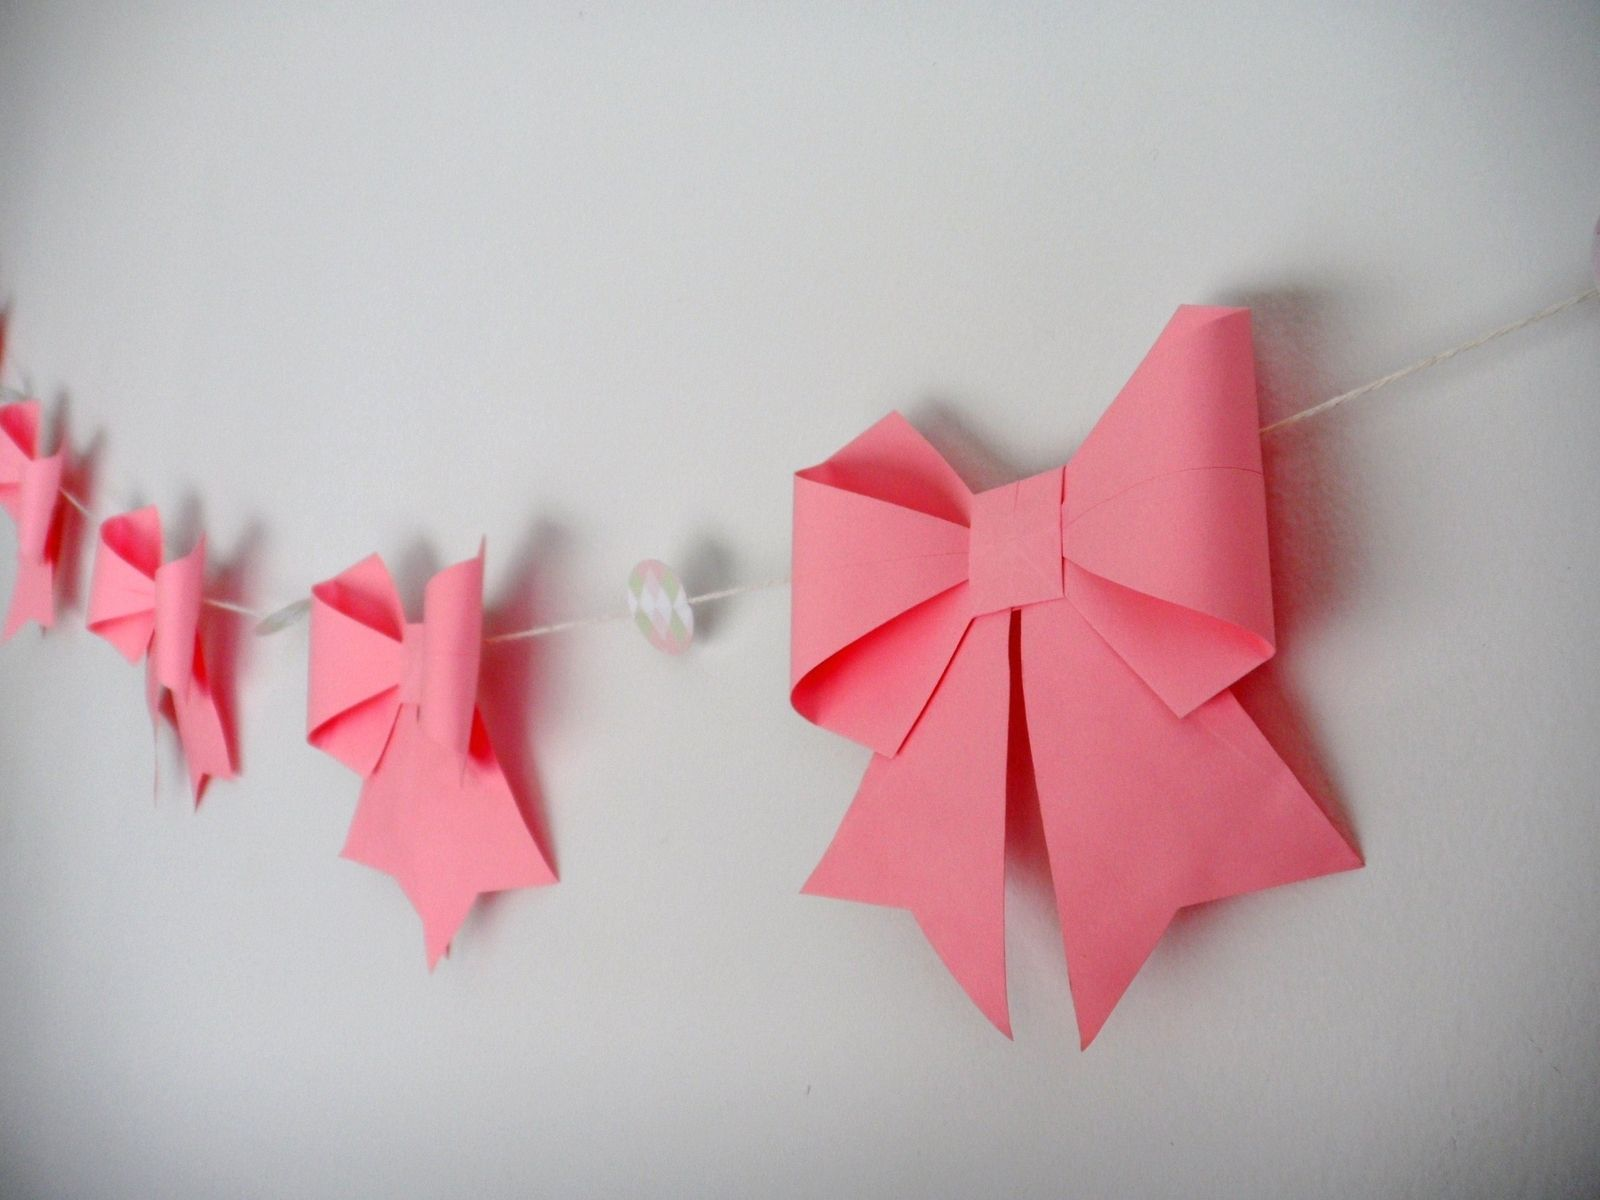 Custom Made 10 Ft Pink Paper Origami Bows Garland By Dear Betsy